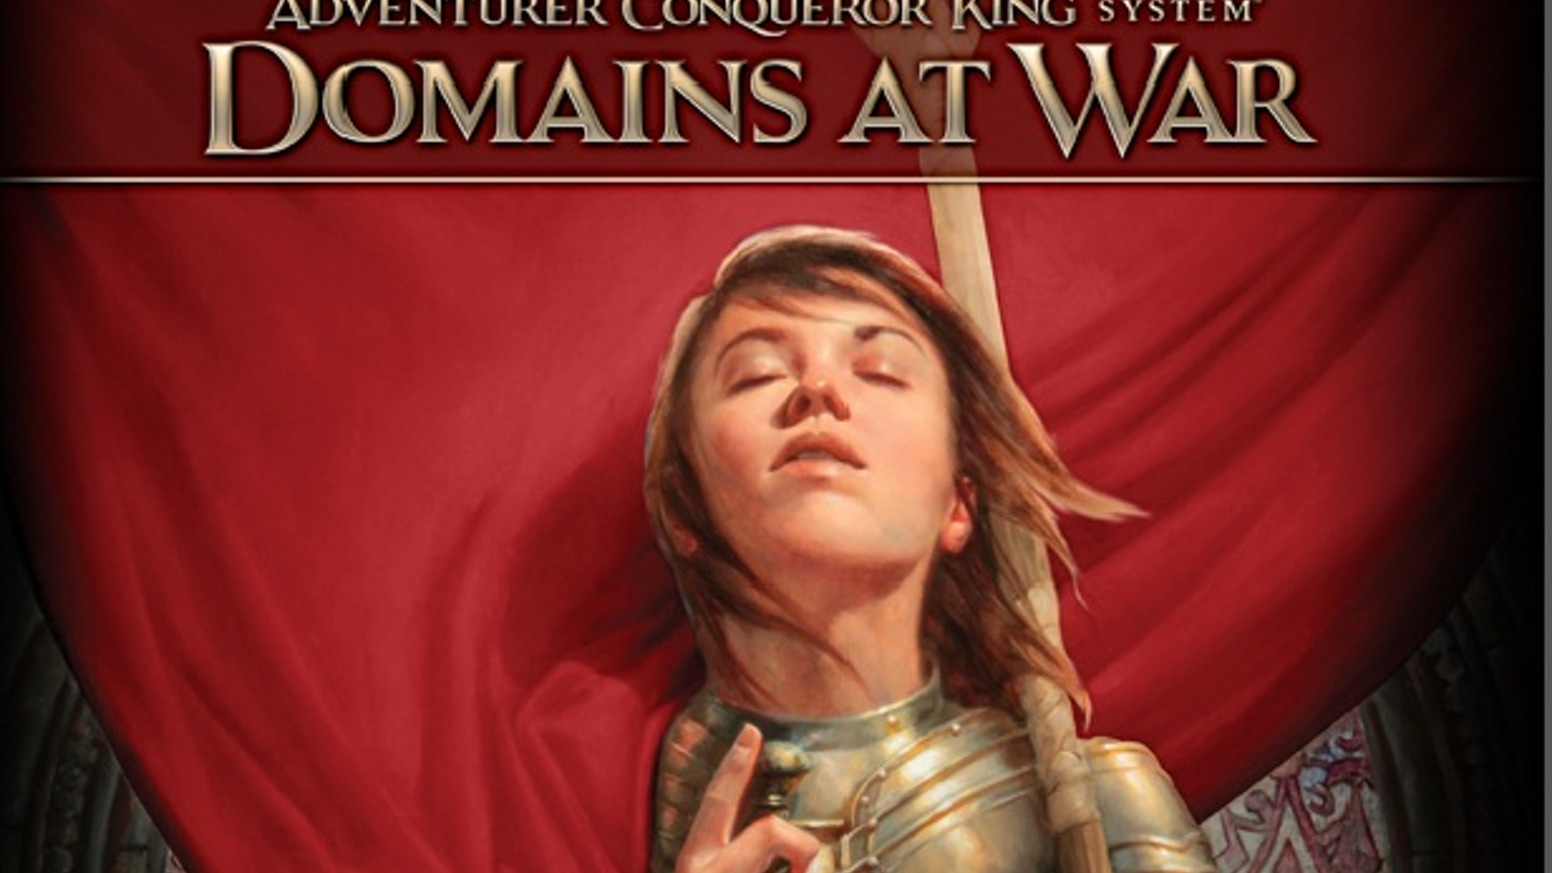 Domains at War: Battles, Campaigns, and Mass Combat by Autarch